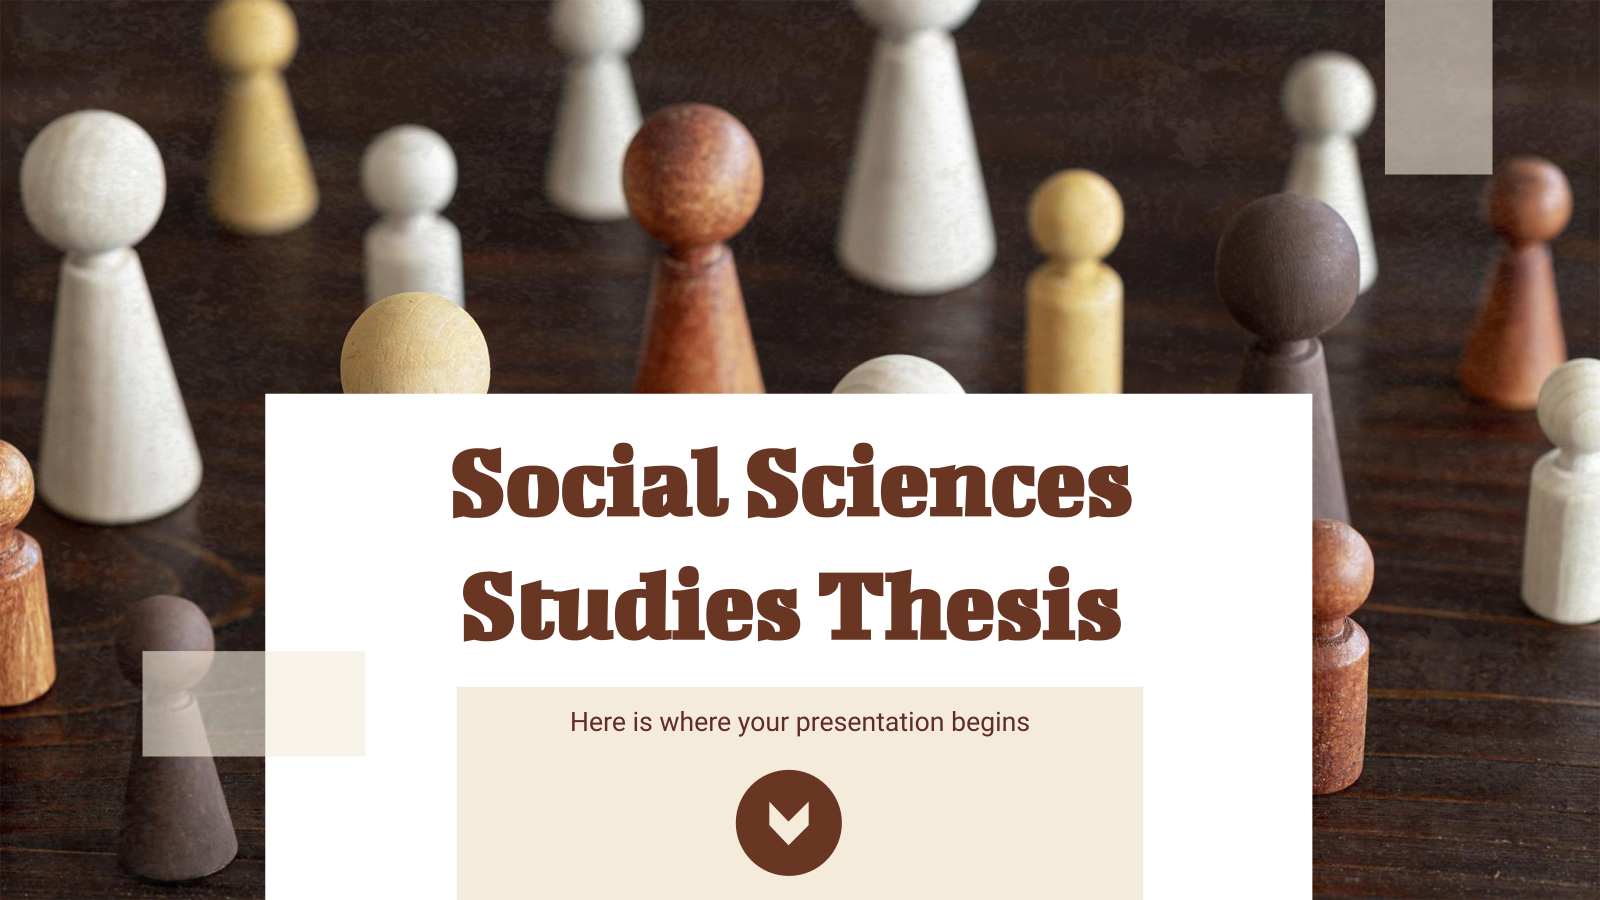 Social Sciences Studies Thesis presentation template